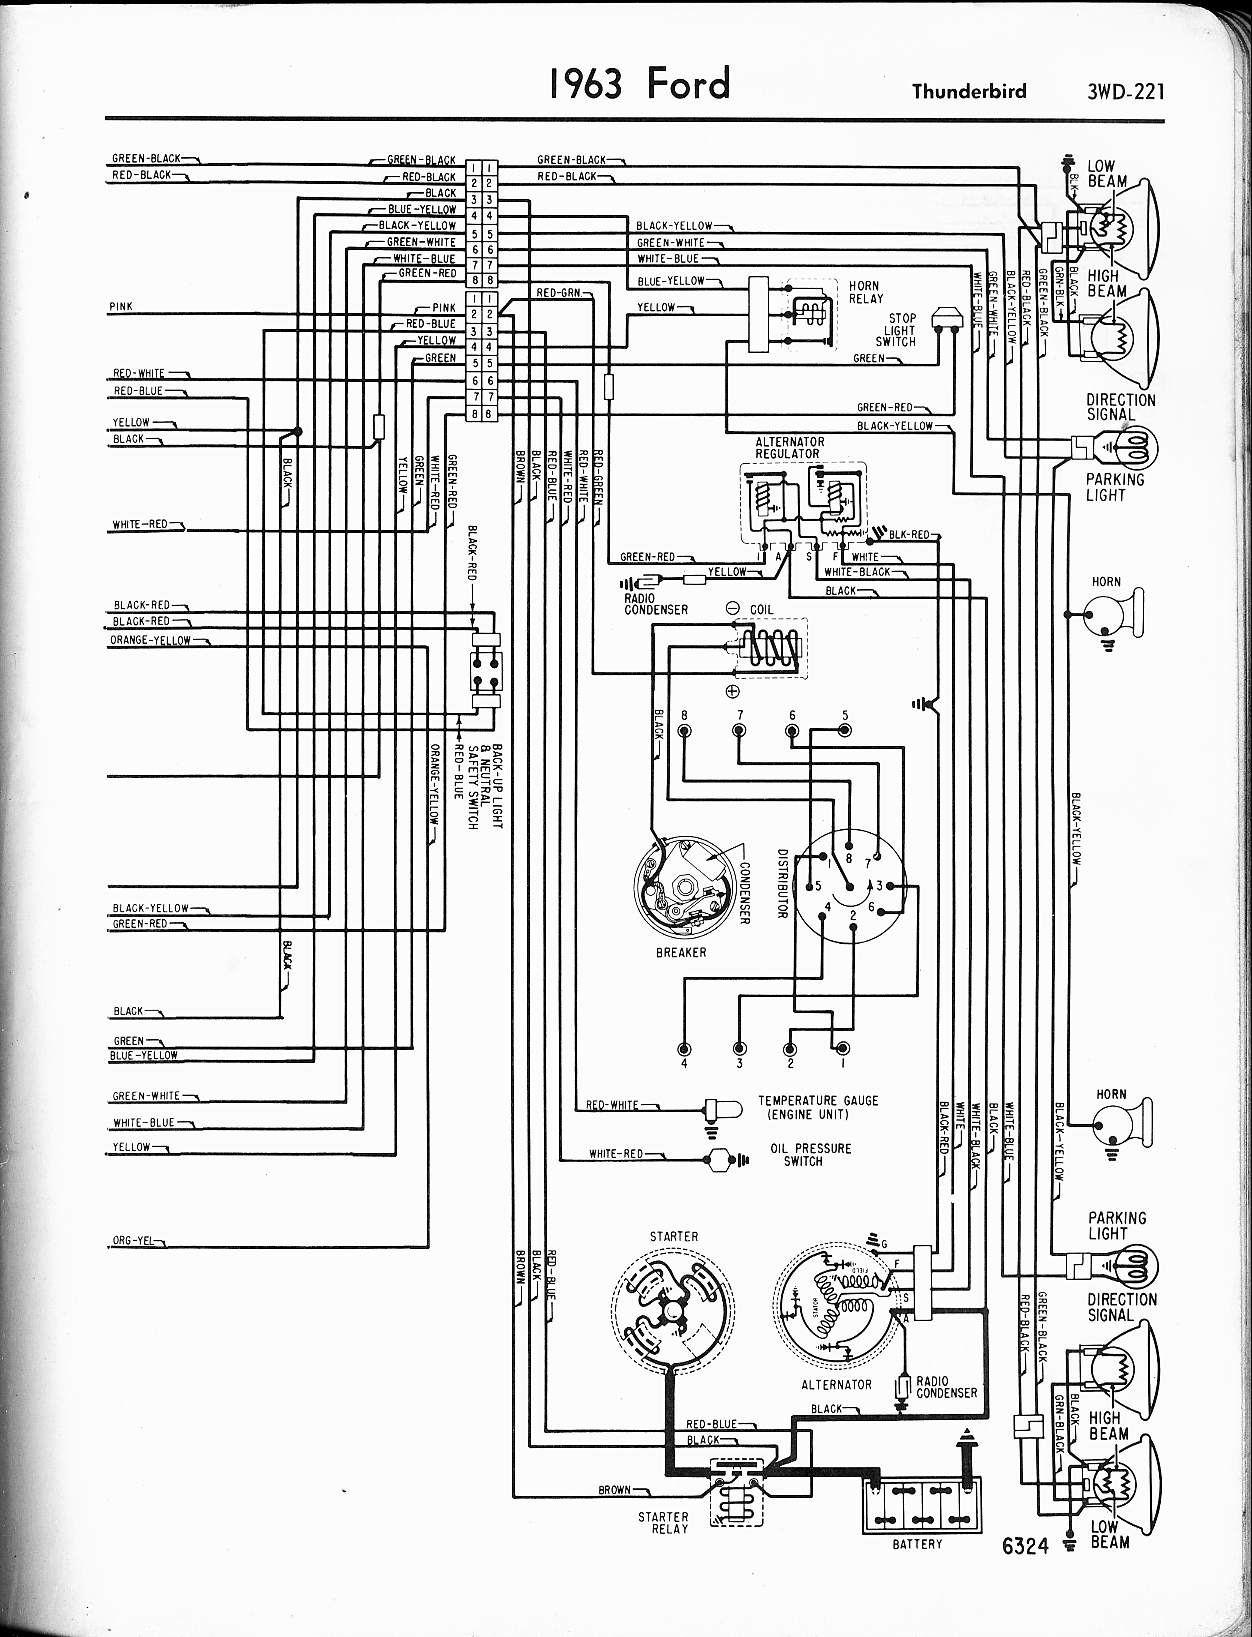 1963 Ford Falcon Wiring Diagram Schematic Trusted Diagrams 1964 Explained